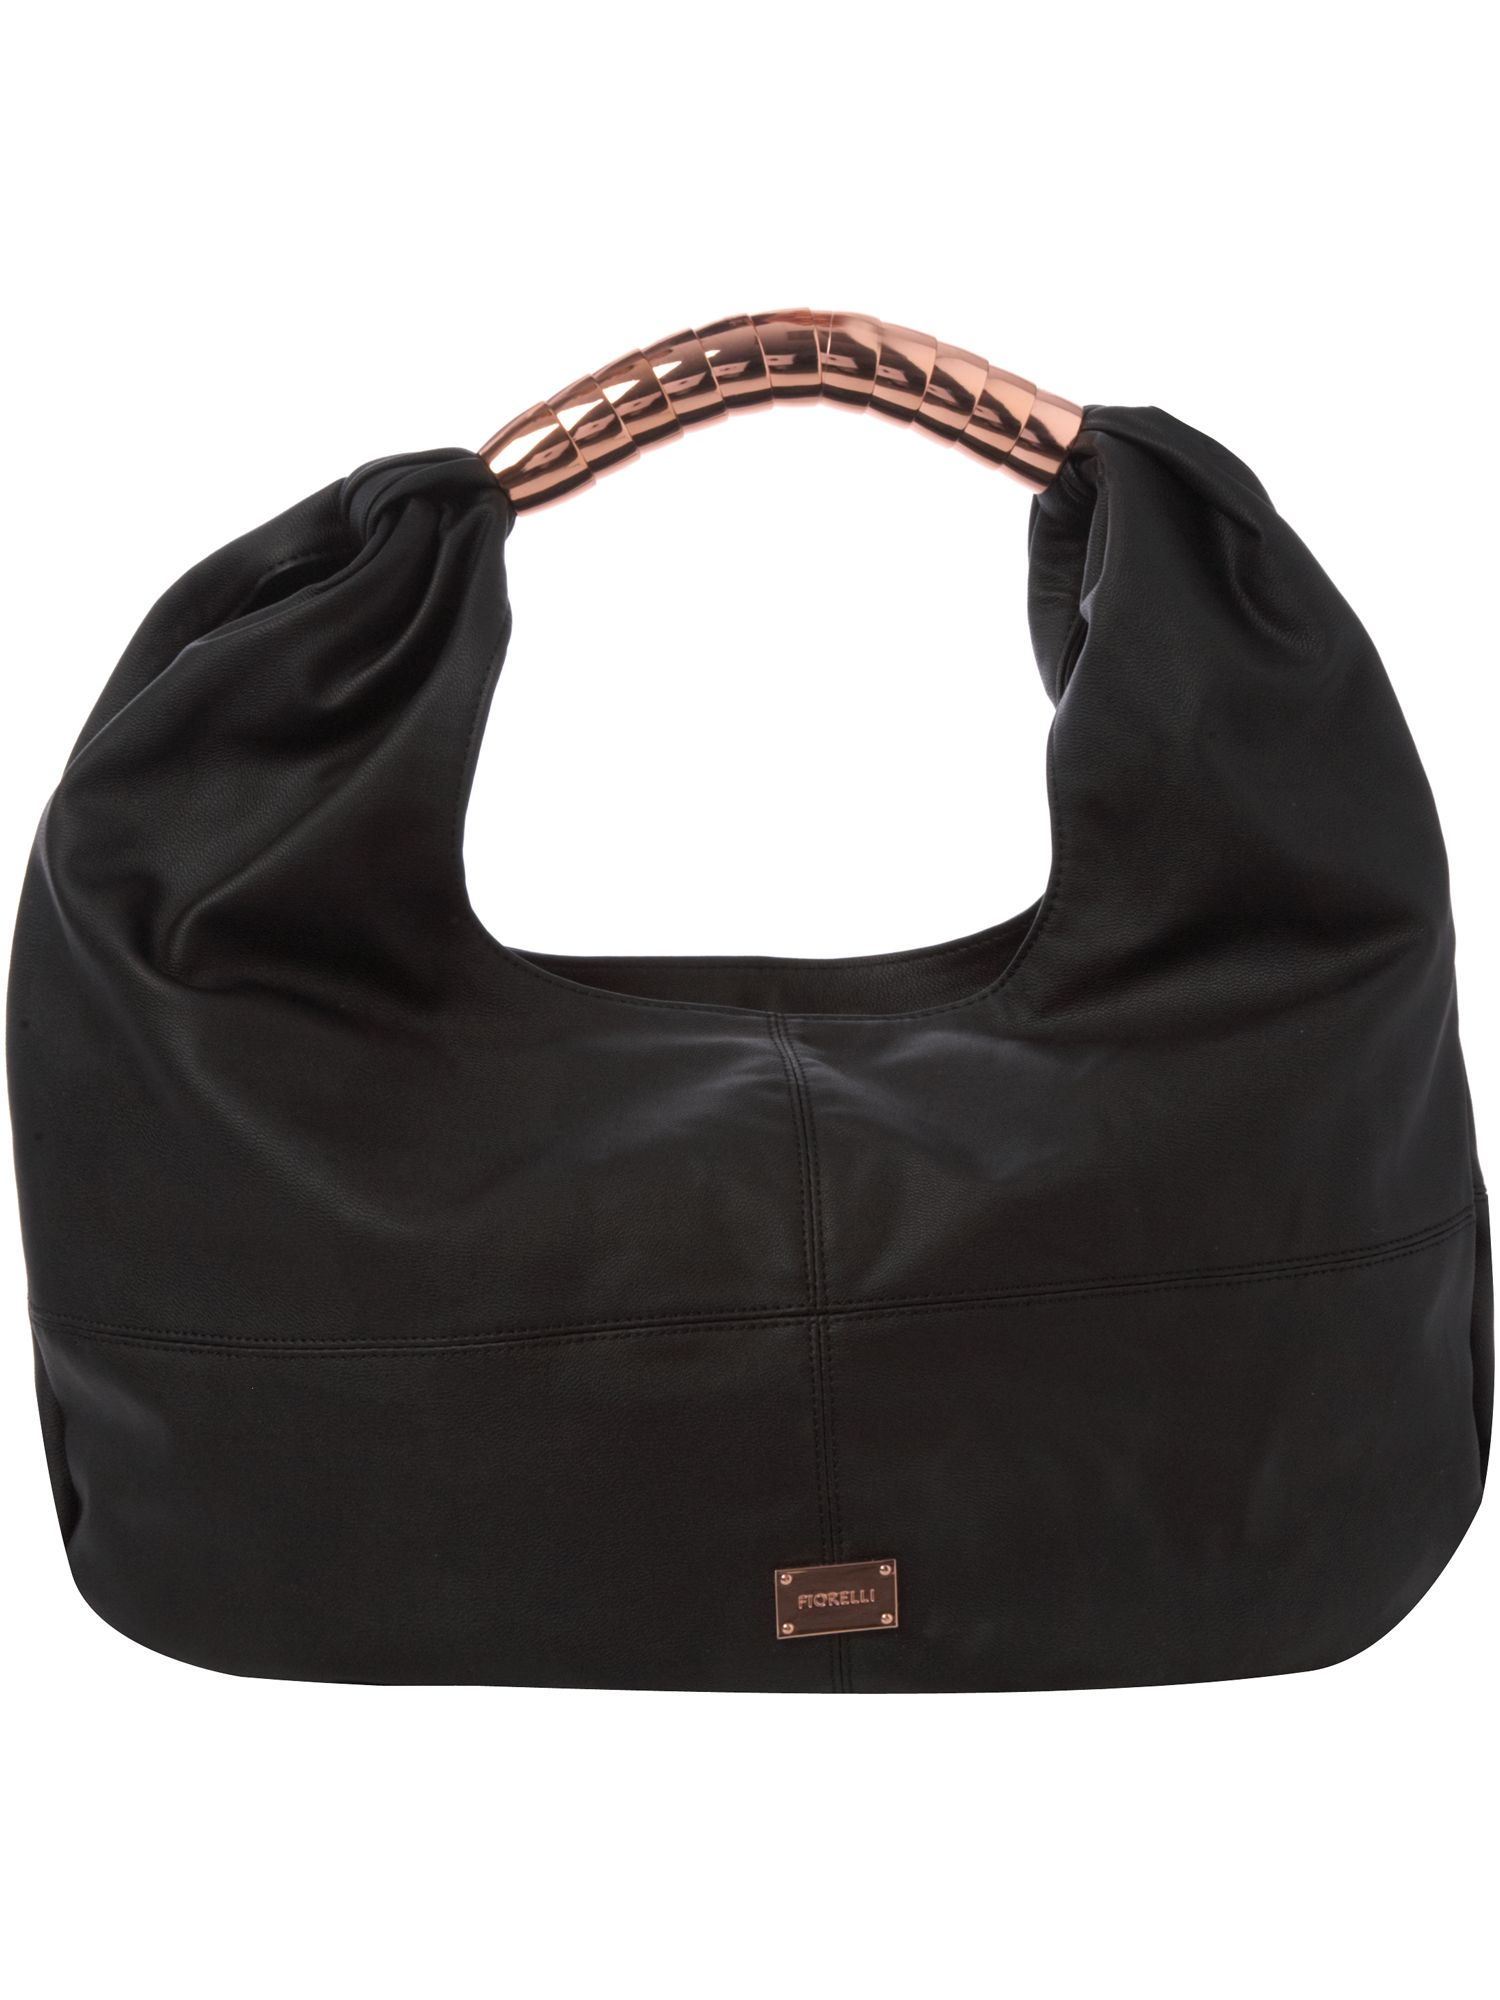 Fiji large shoulder hobo bag